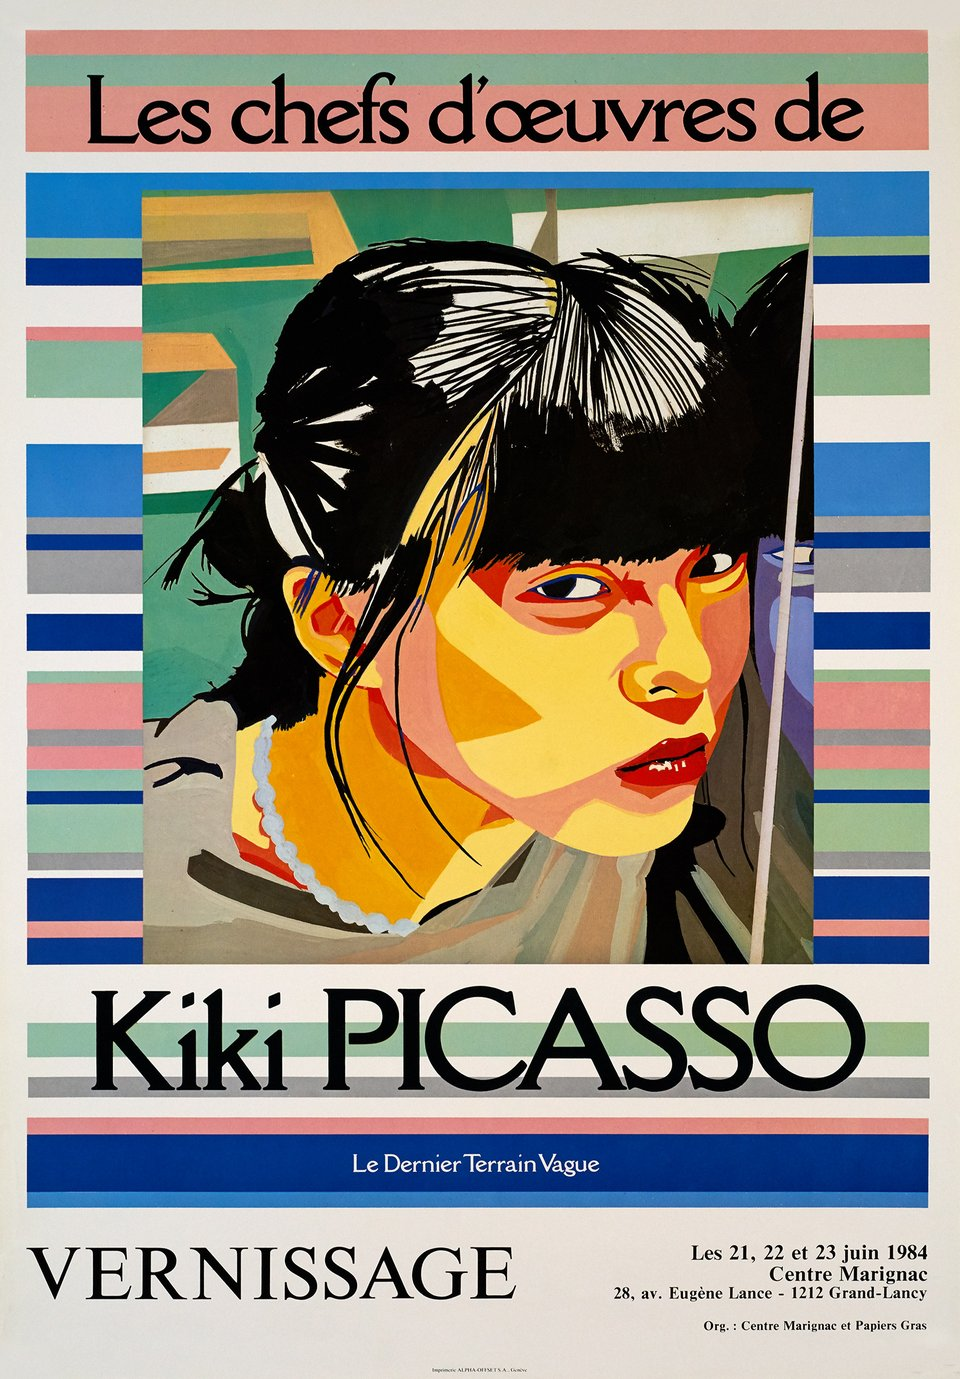 Kiki Picasso, Les chefs d'oeuvres – Affiche ancienne – Kiki PICASSO – 1984